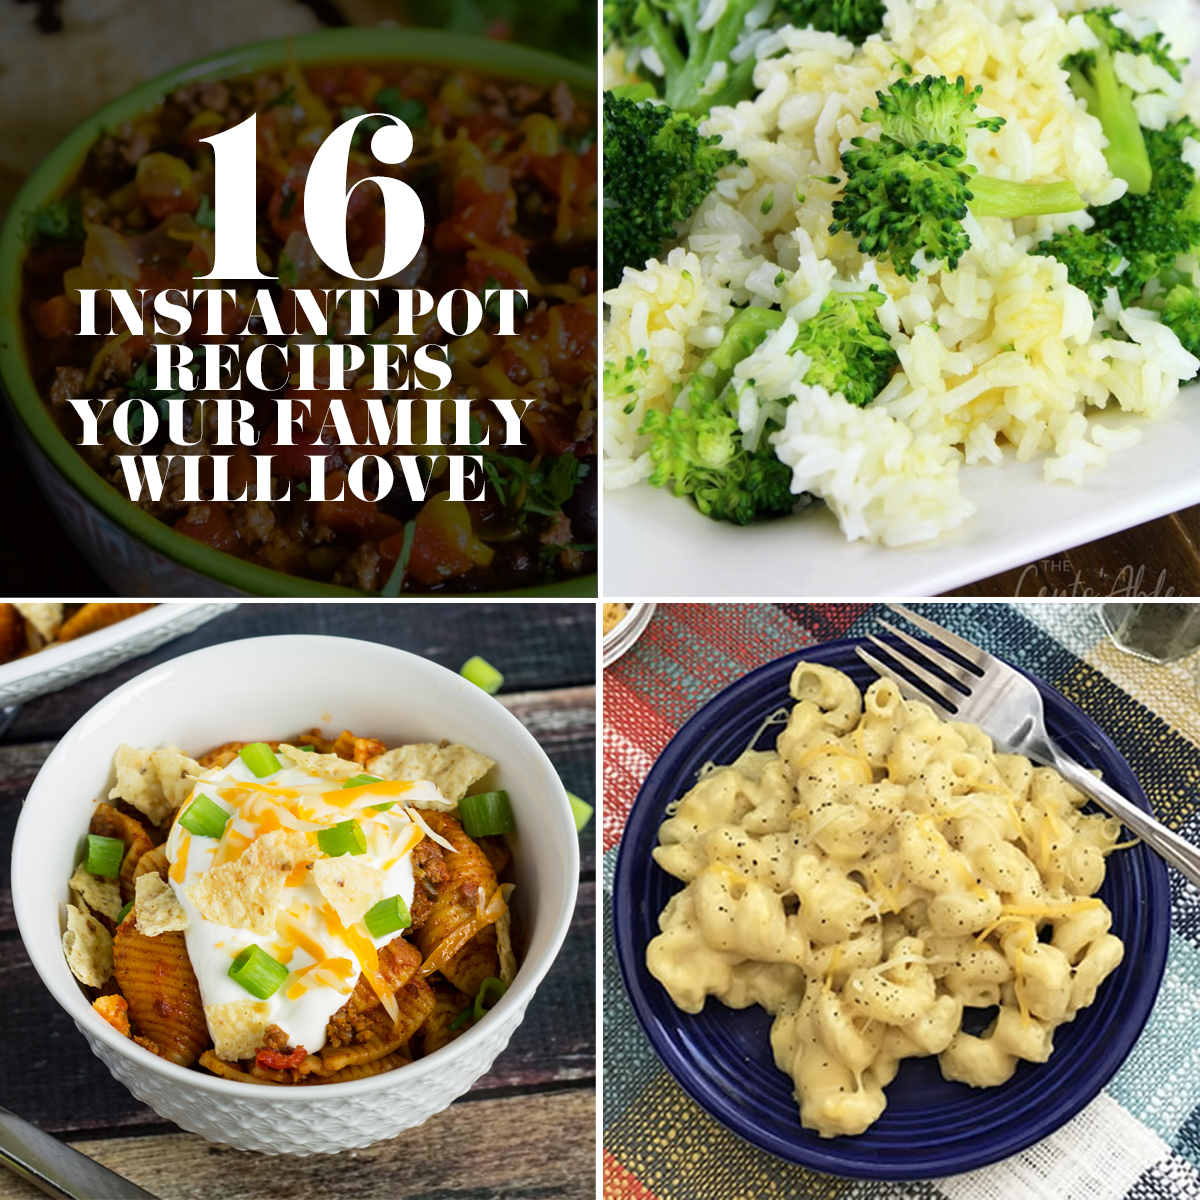 16 FAMILY FRIENDLY INSTANT POT RECIPES